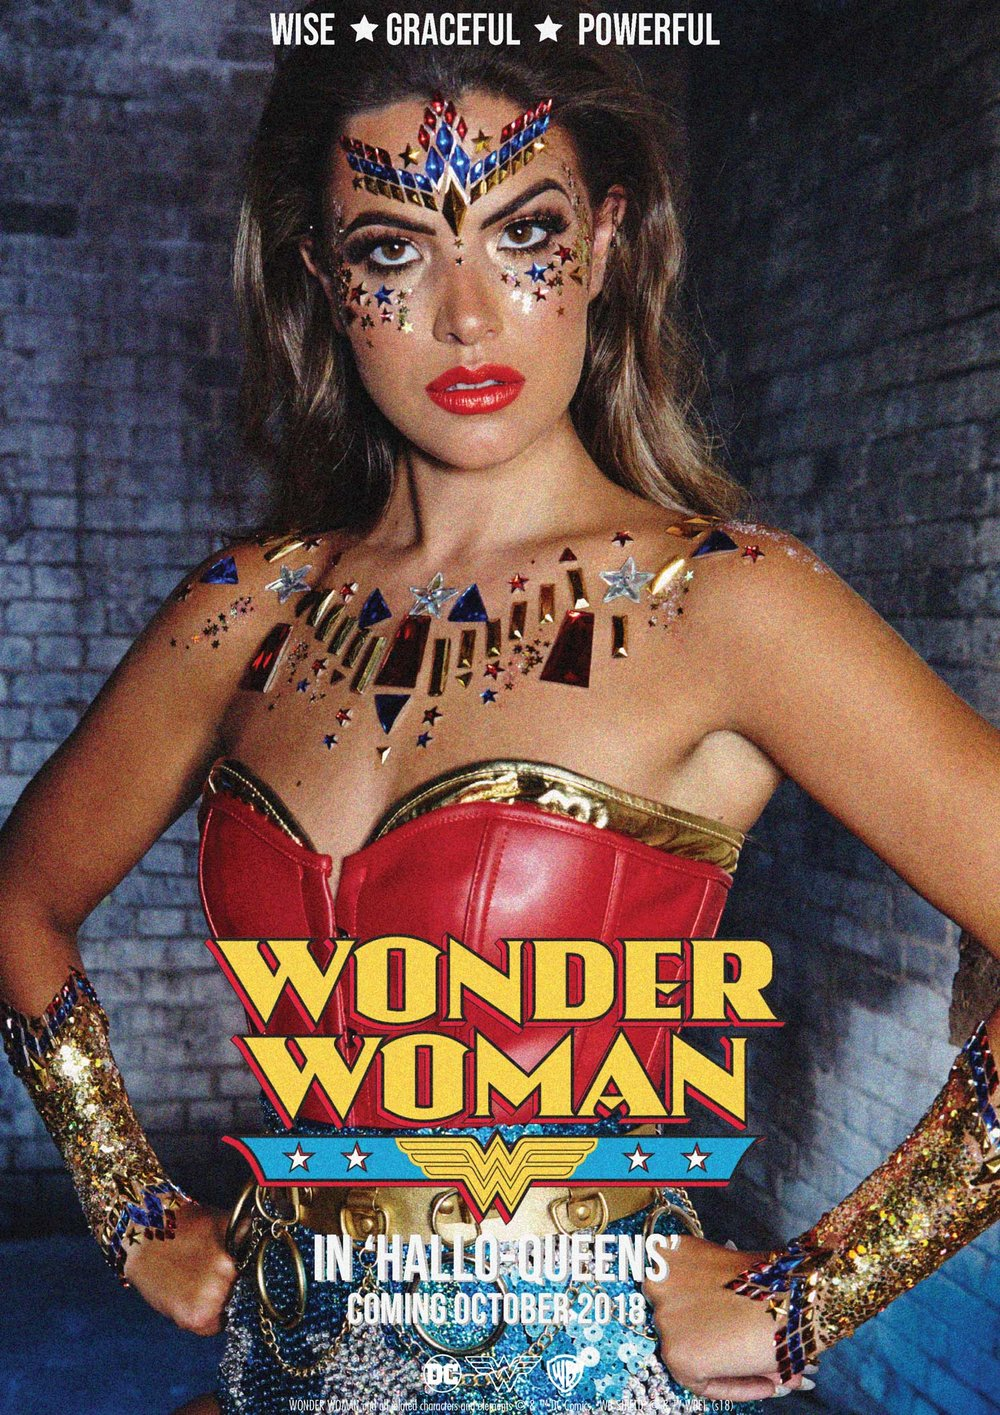 WONDER WOMAN - The leader of the group - you're powerful and wise. You have superhuman strength and determination! Brave and kind, you're the ultimate Hallo-Queen!